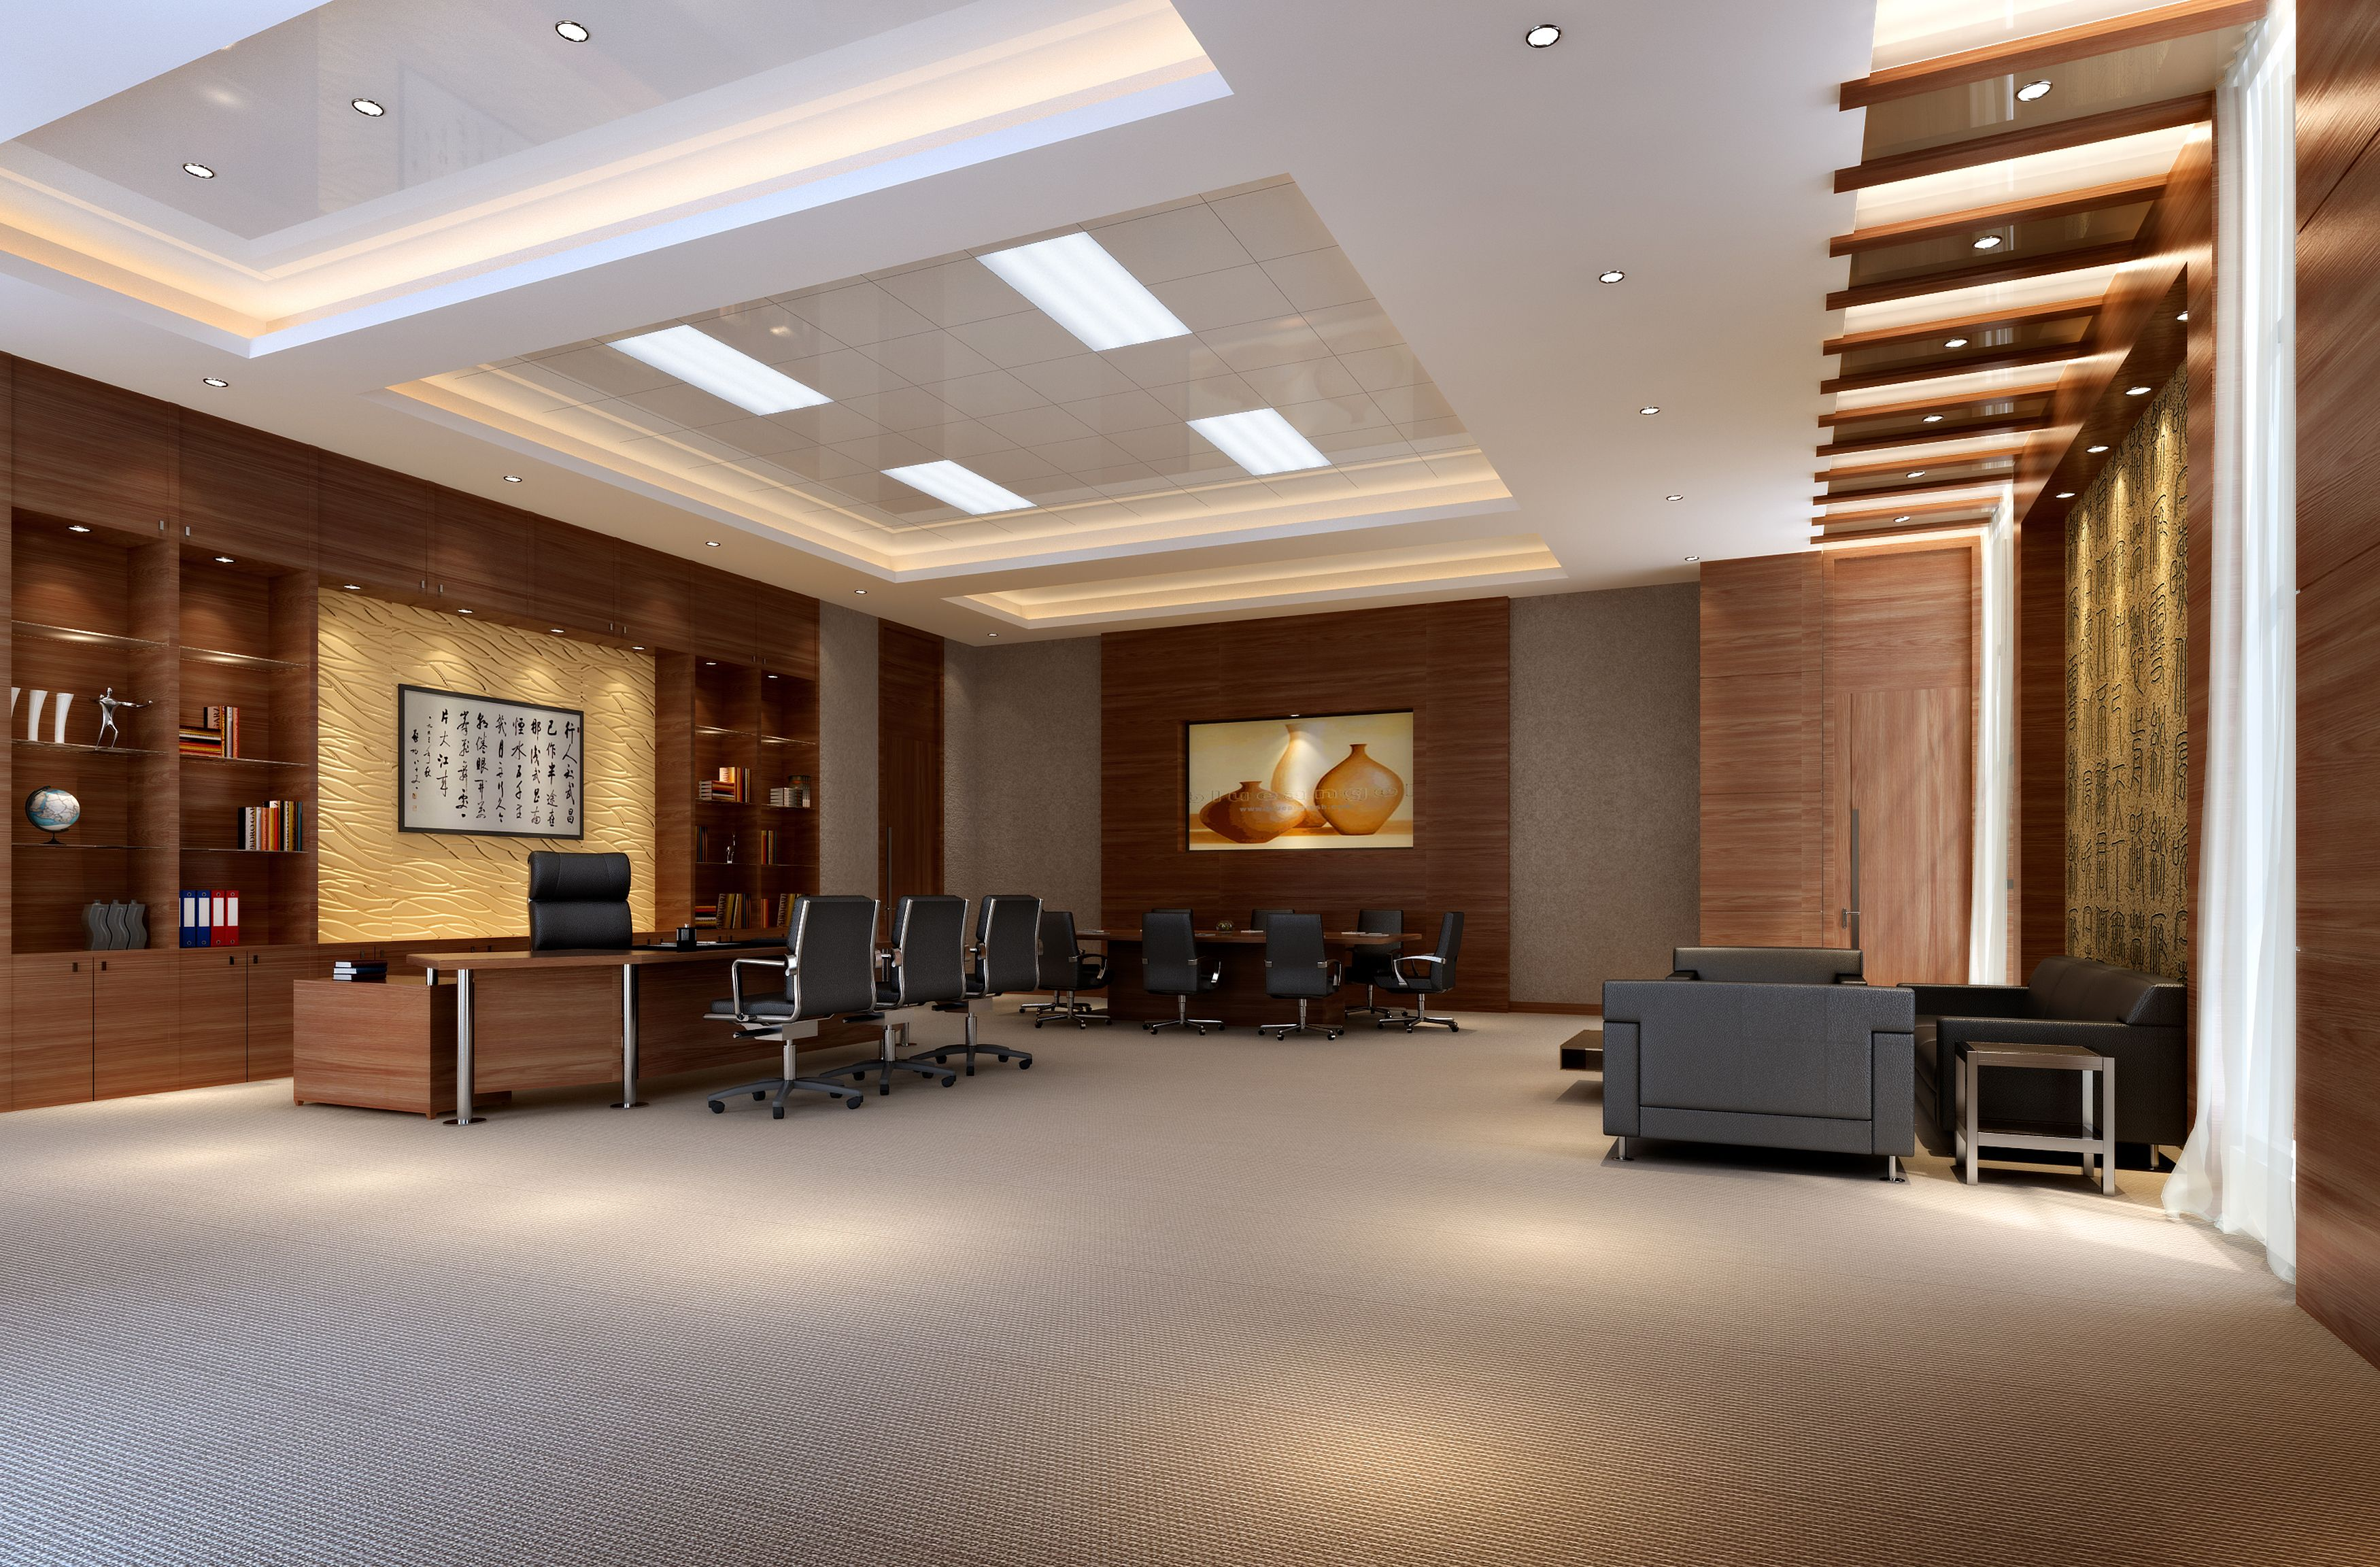 Office 023 3d model highly detailed hi tech photorealistic interior scene rendered with vray and 3ds max 2009 photometric lights in the scene